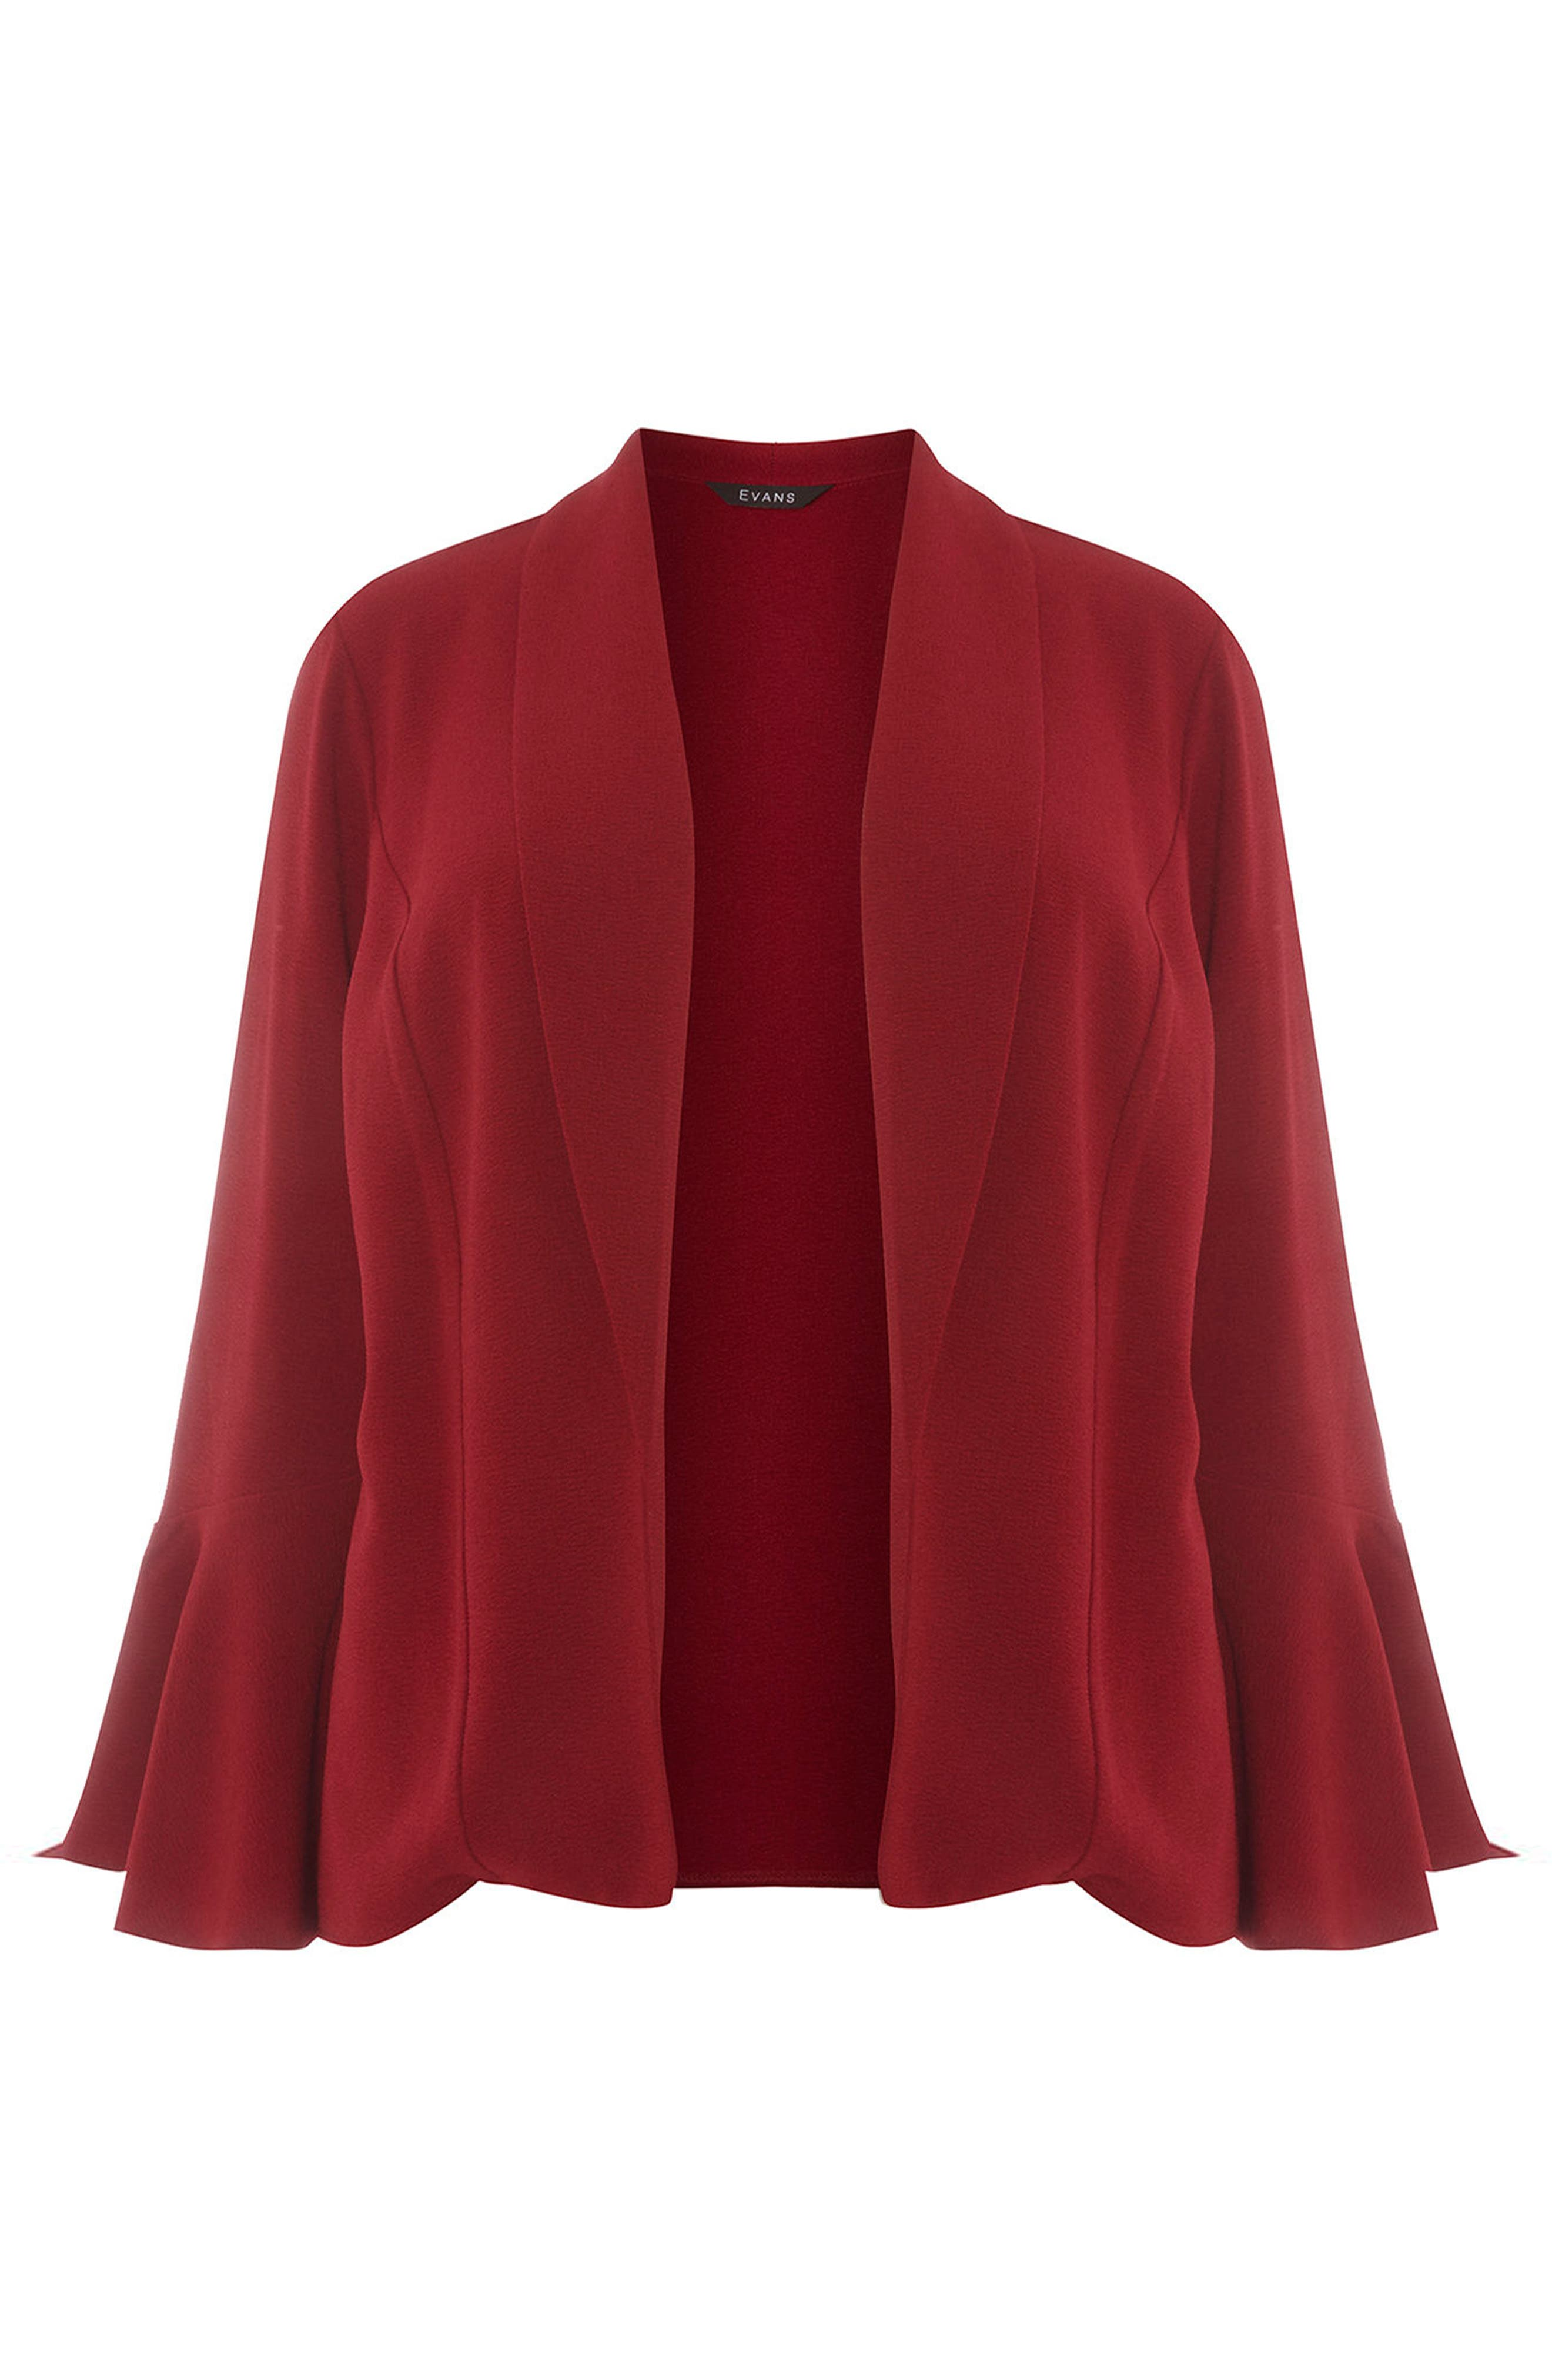 Bell Sleeve Crepe Jacket,                             Alternate thumbnail 5, color,                             600